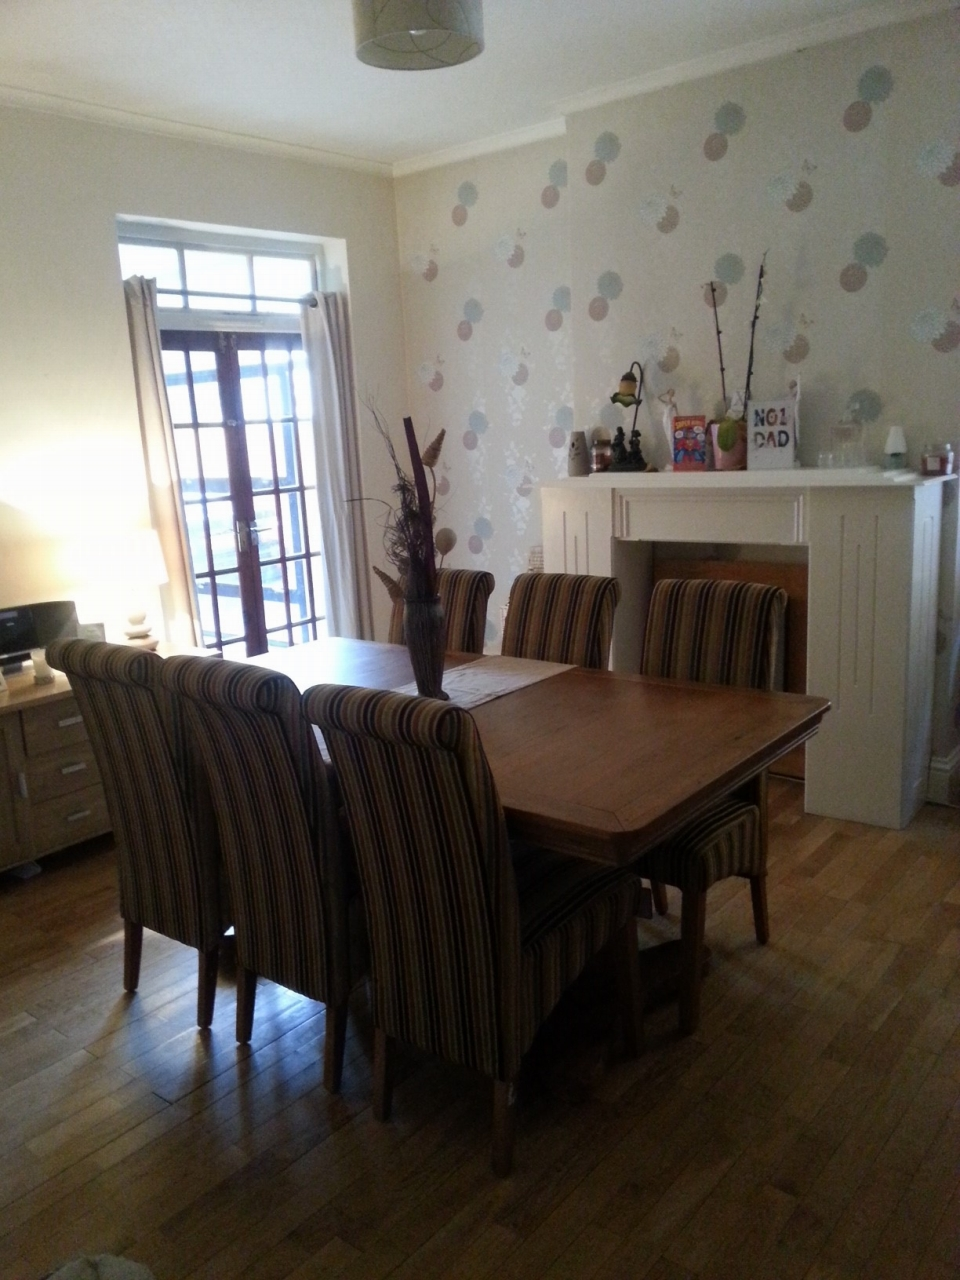 3 bedroom barn conversion house SSTC in Leicester - Photograph 4.